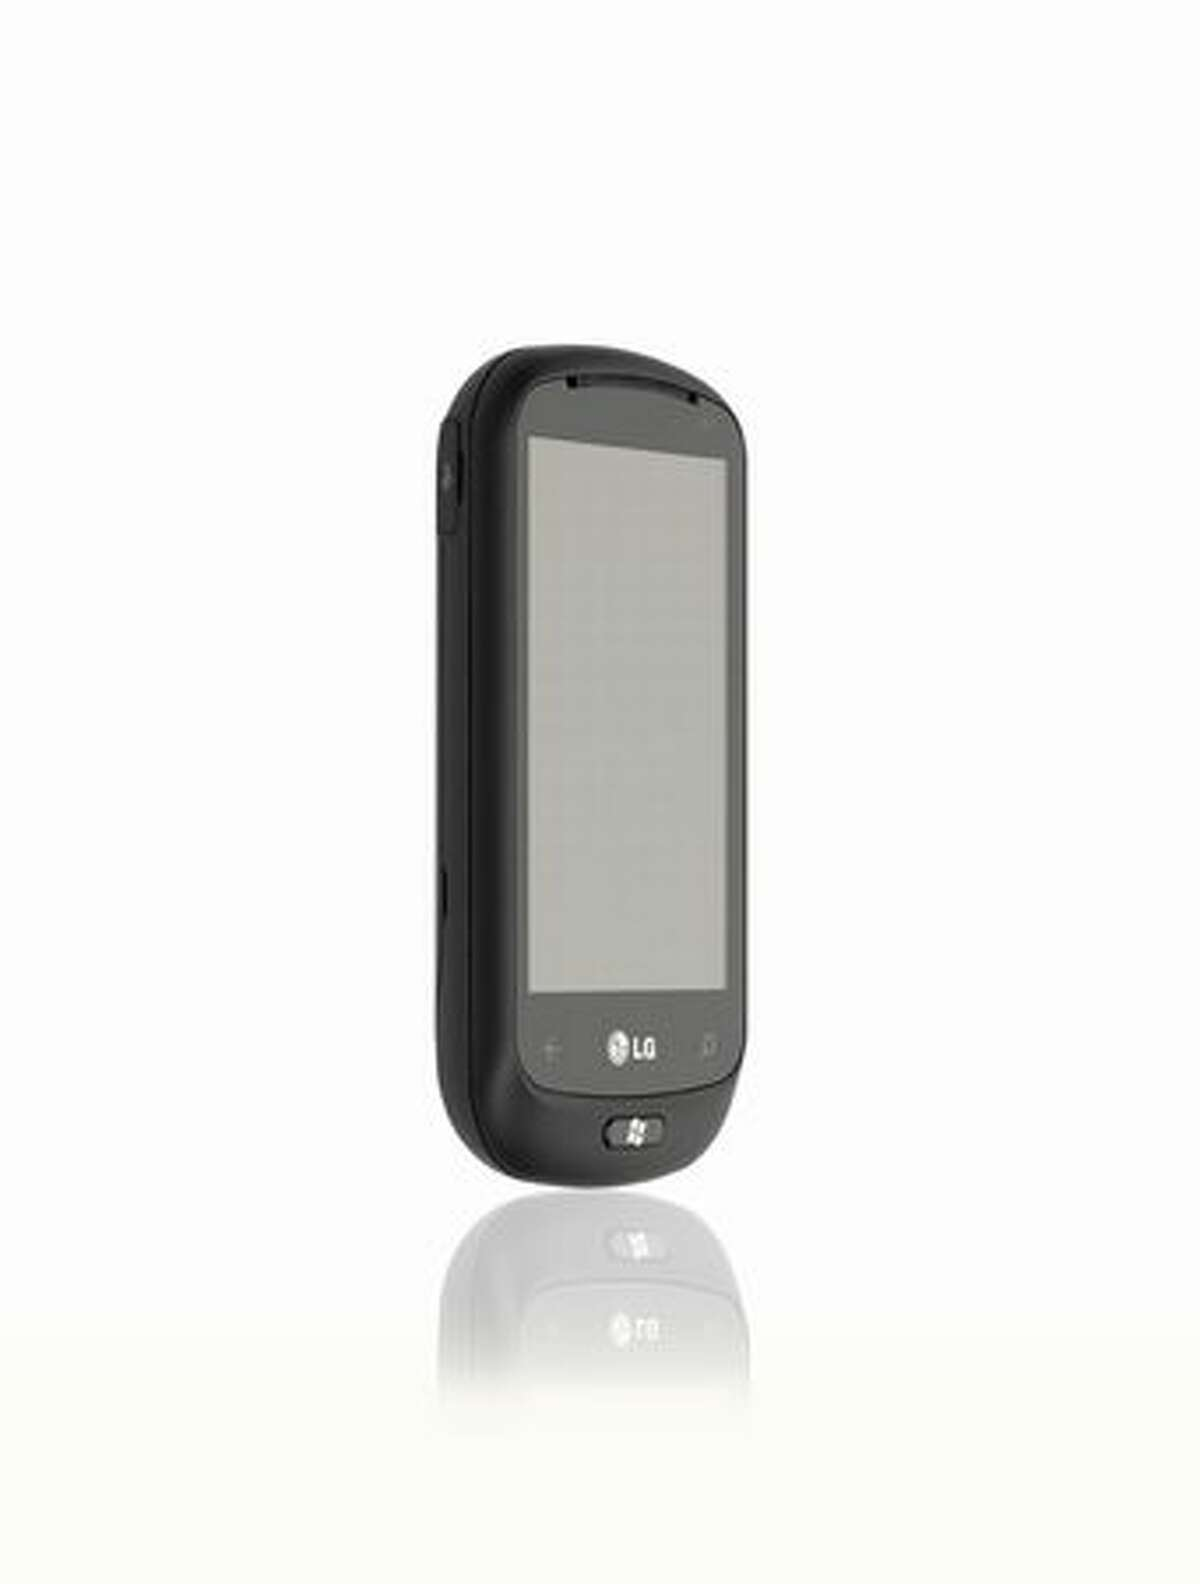 The LG Quantum with Windows Phone 7 is coming to AT&T in the U.S.